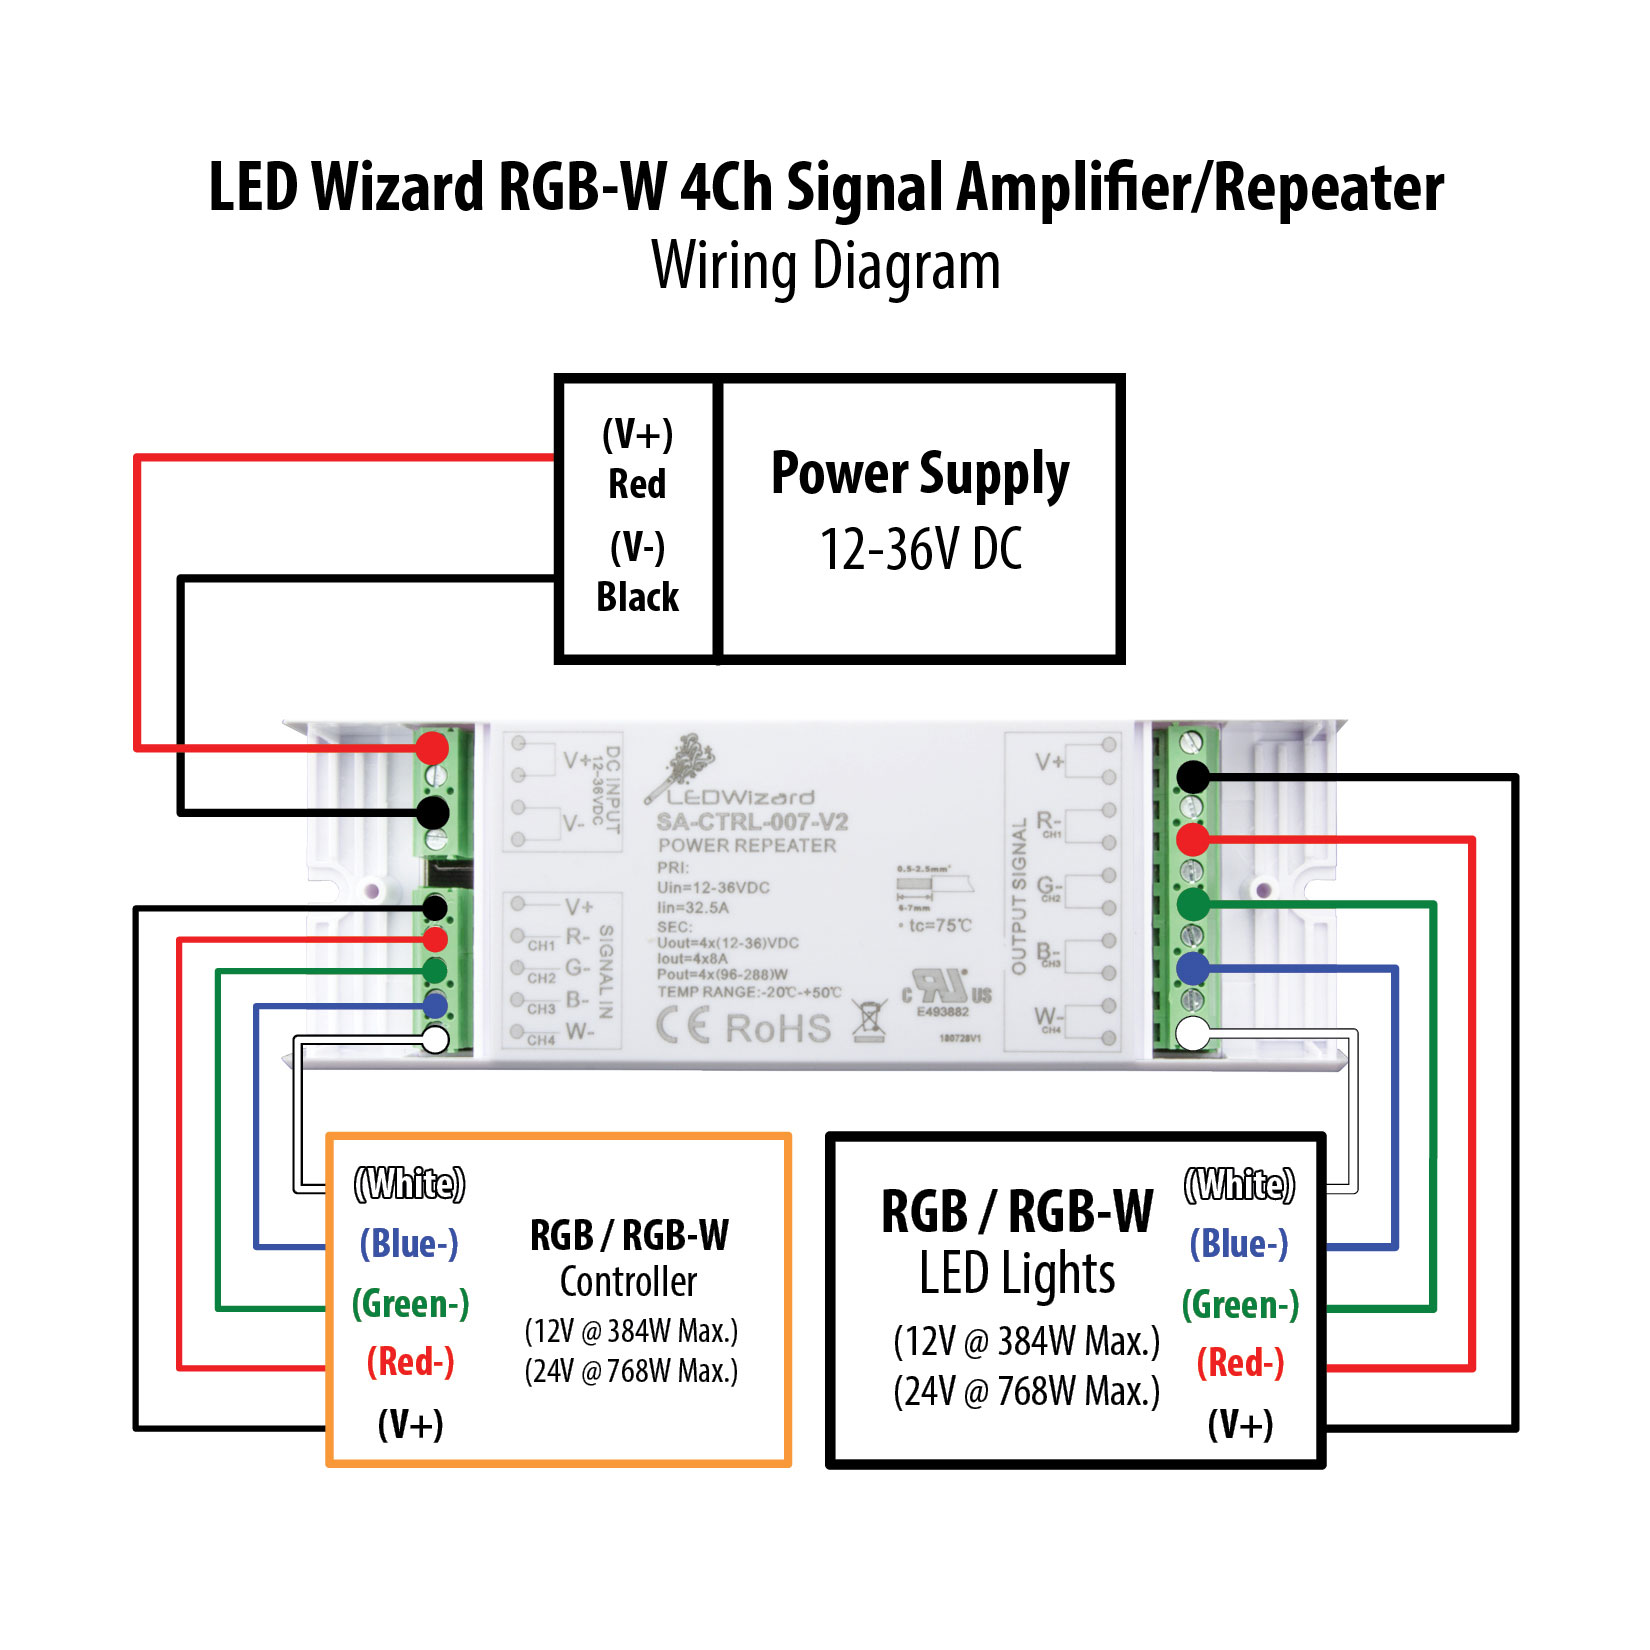 Led wizard rgb signal amplifierrepeater customers questions and answers asfbconference2016 Choice Image